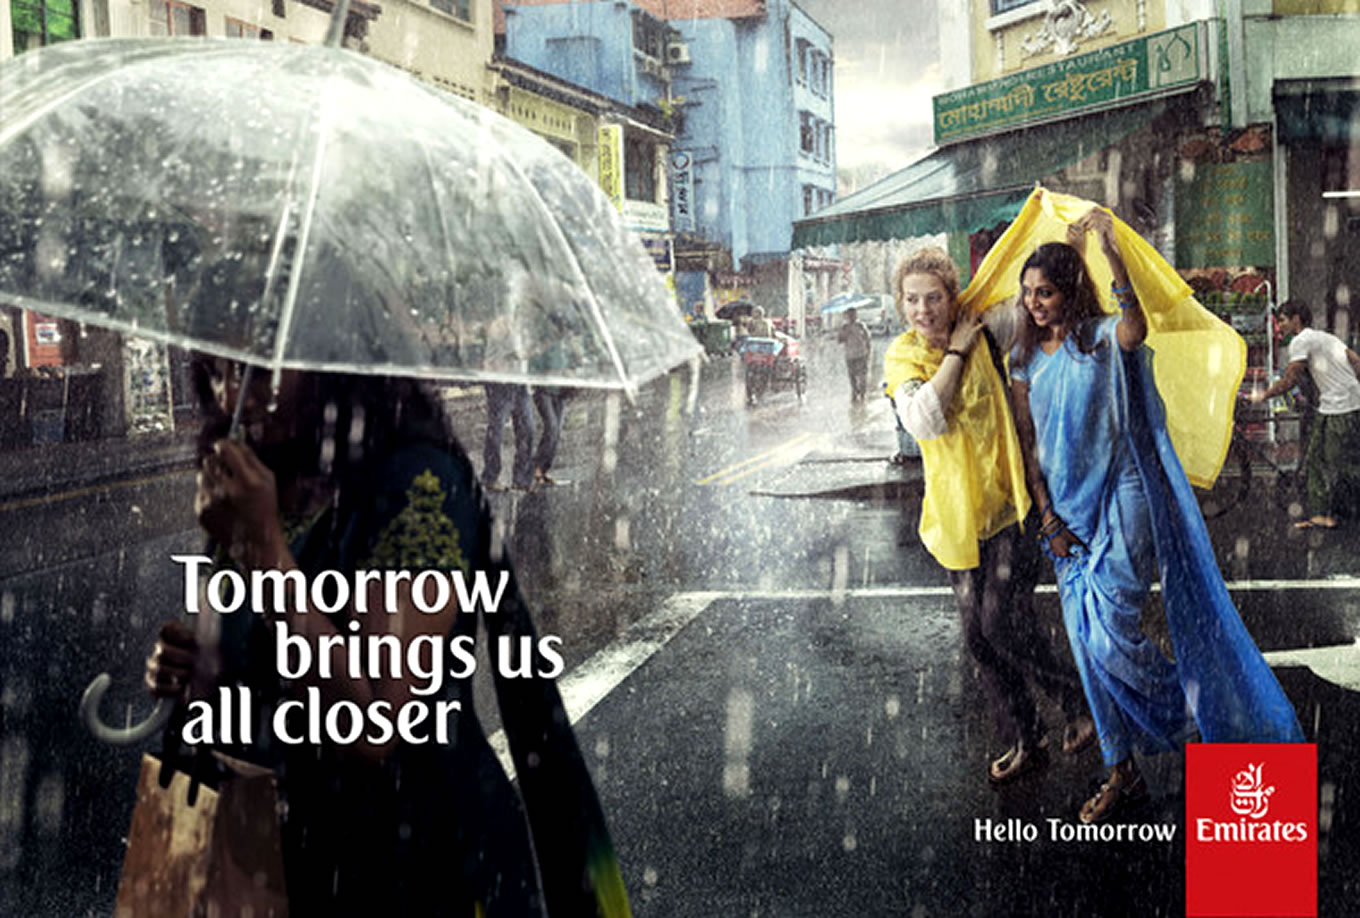 Brings Us All Closer, Hello Tomorrow Marketing Campaign by Emirates Airlines